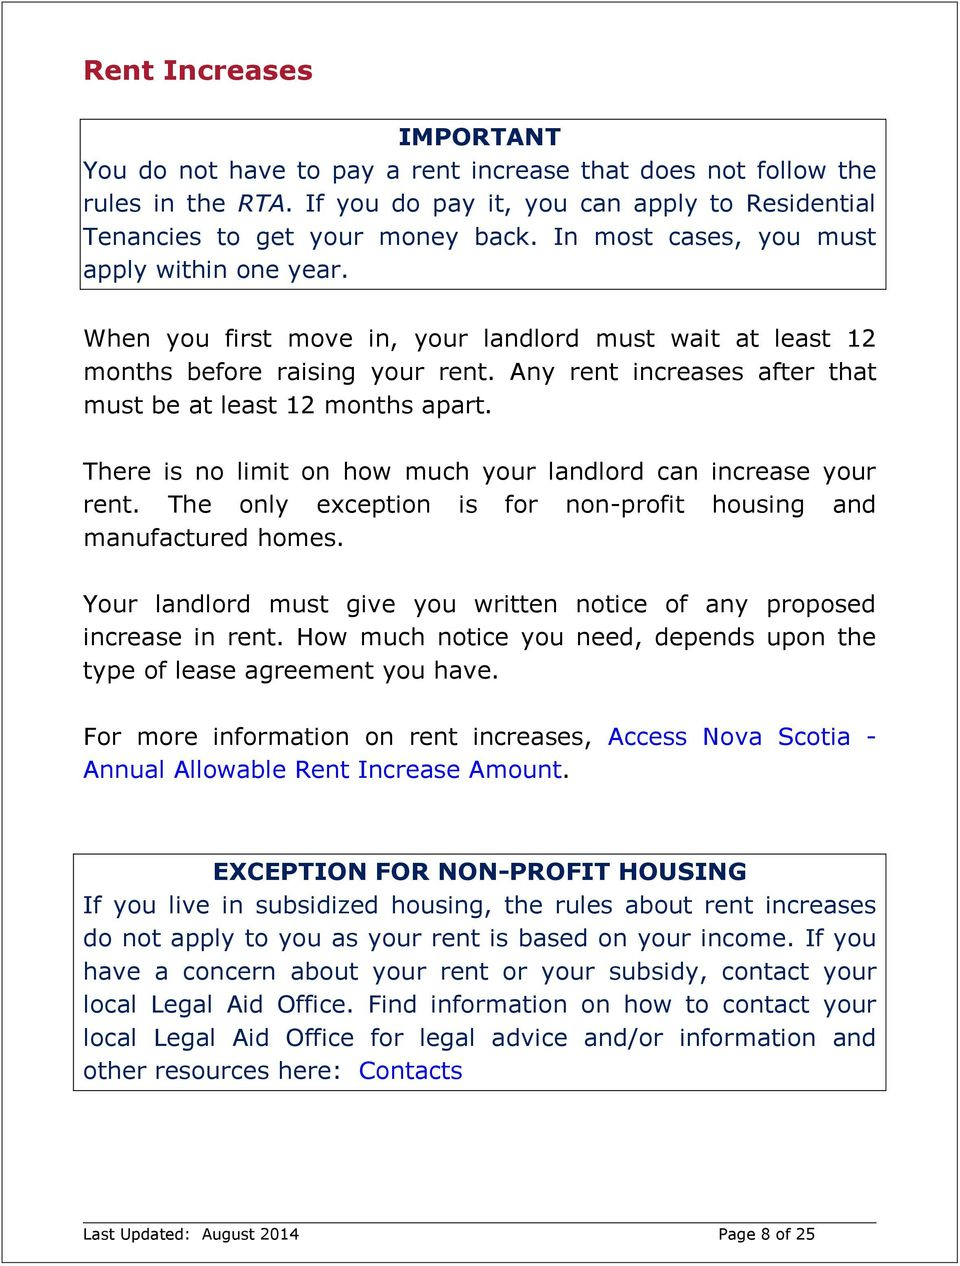 Any rent increases after that must be at least 12 months apart. There is no limit on how much your landlord can increase your rent. The only exception is for non-profit housing and manufactured homes.